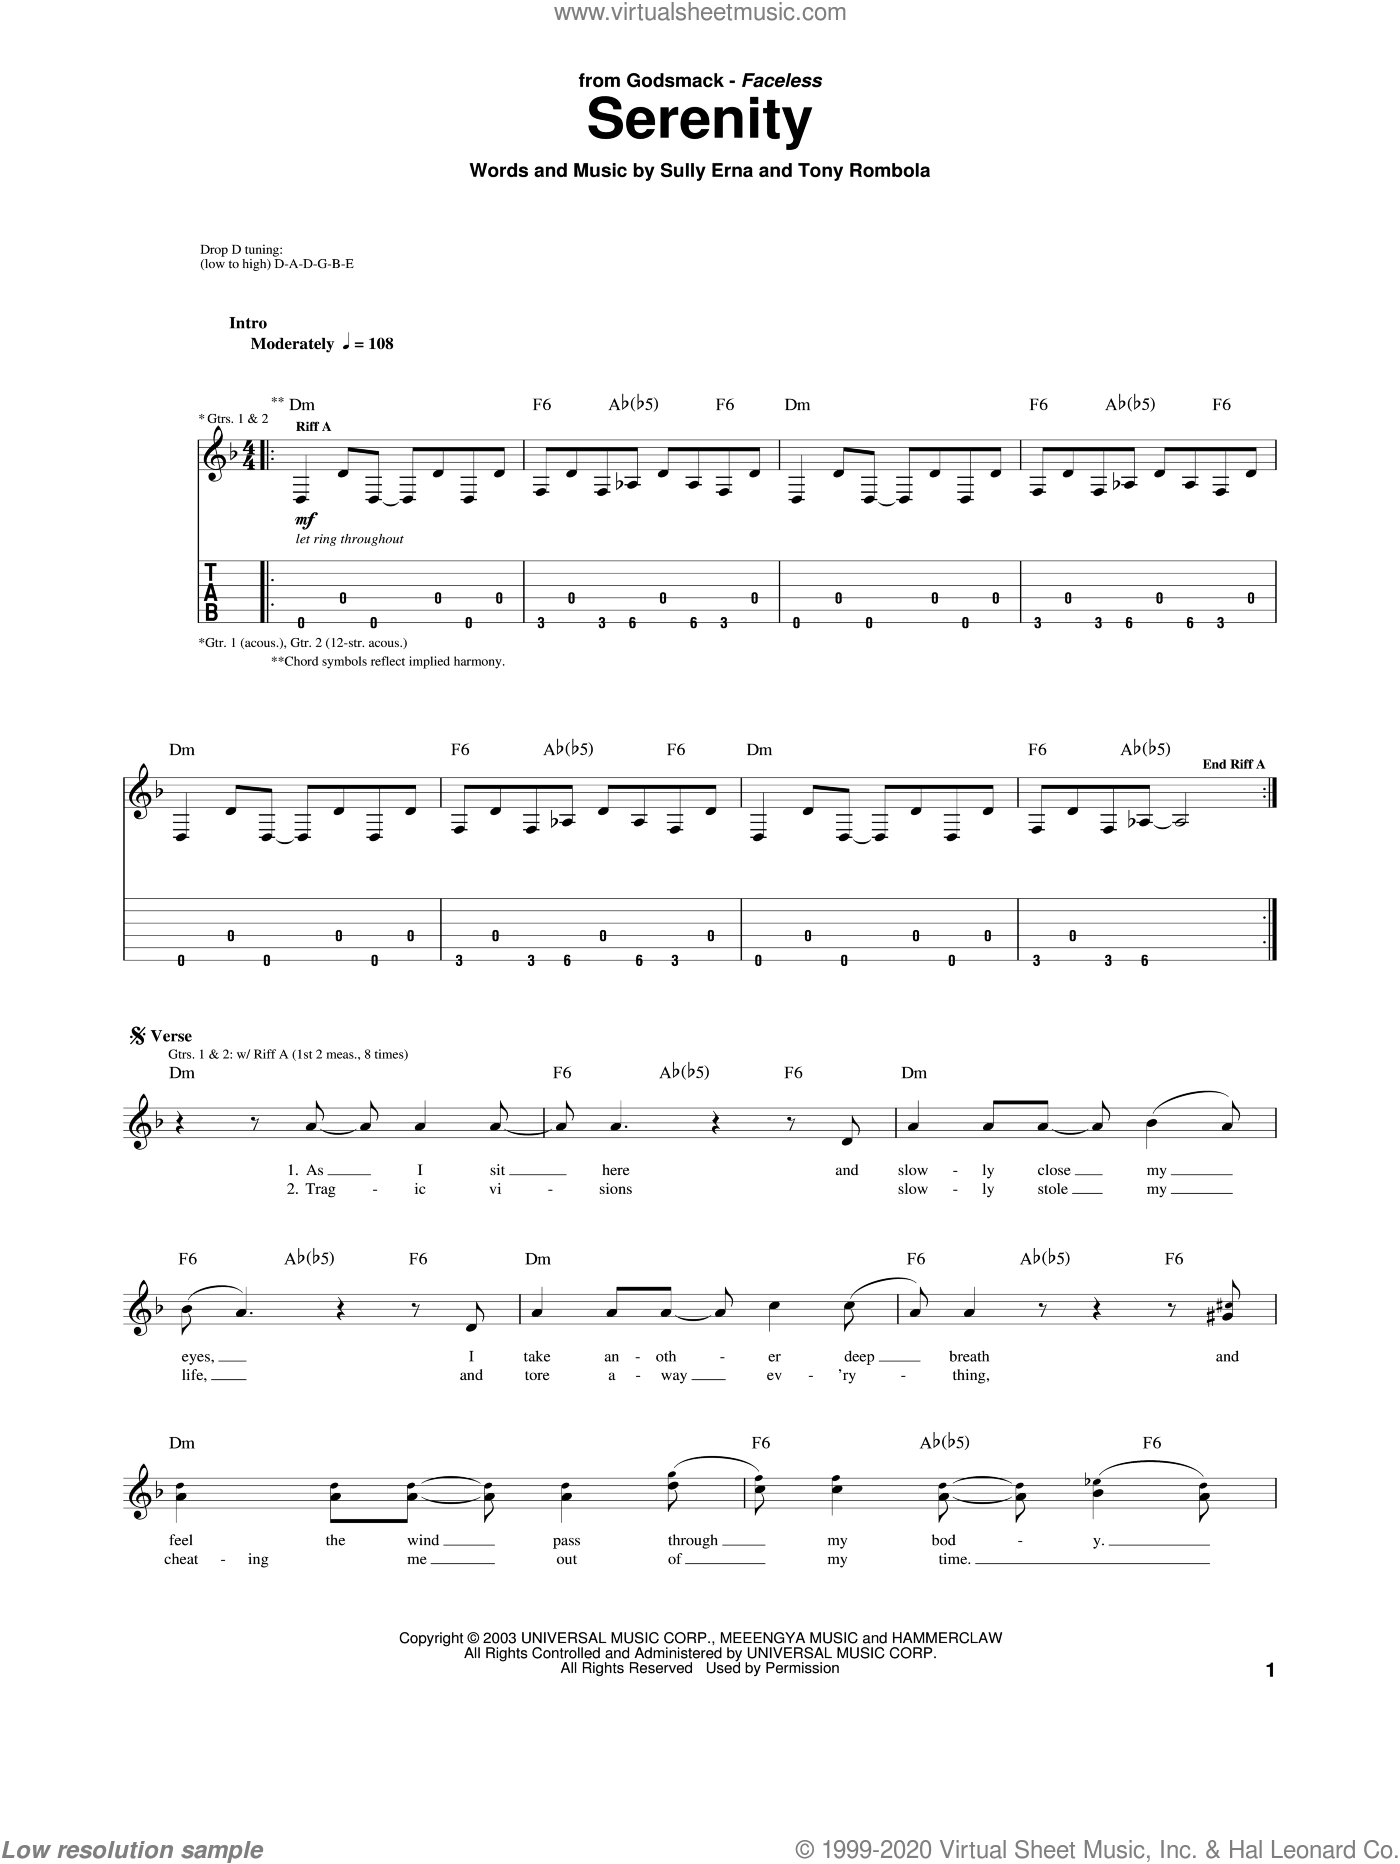 Serenity sheet music for guitar (tablature) by Godsmack, Sully Erna and Tony Rombola, intermediate skill level